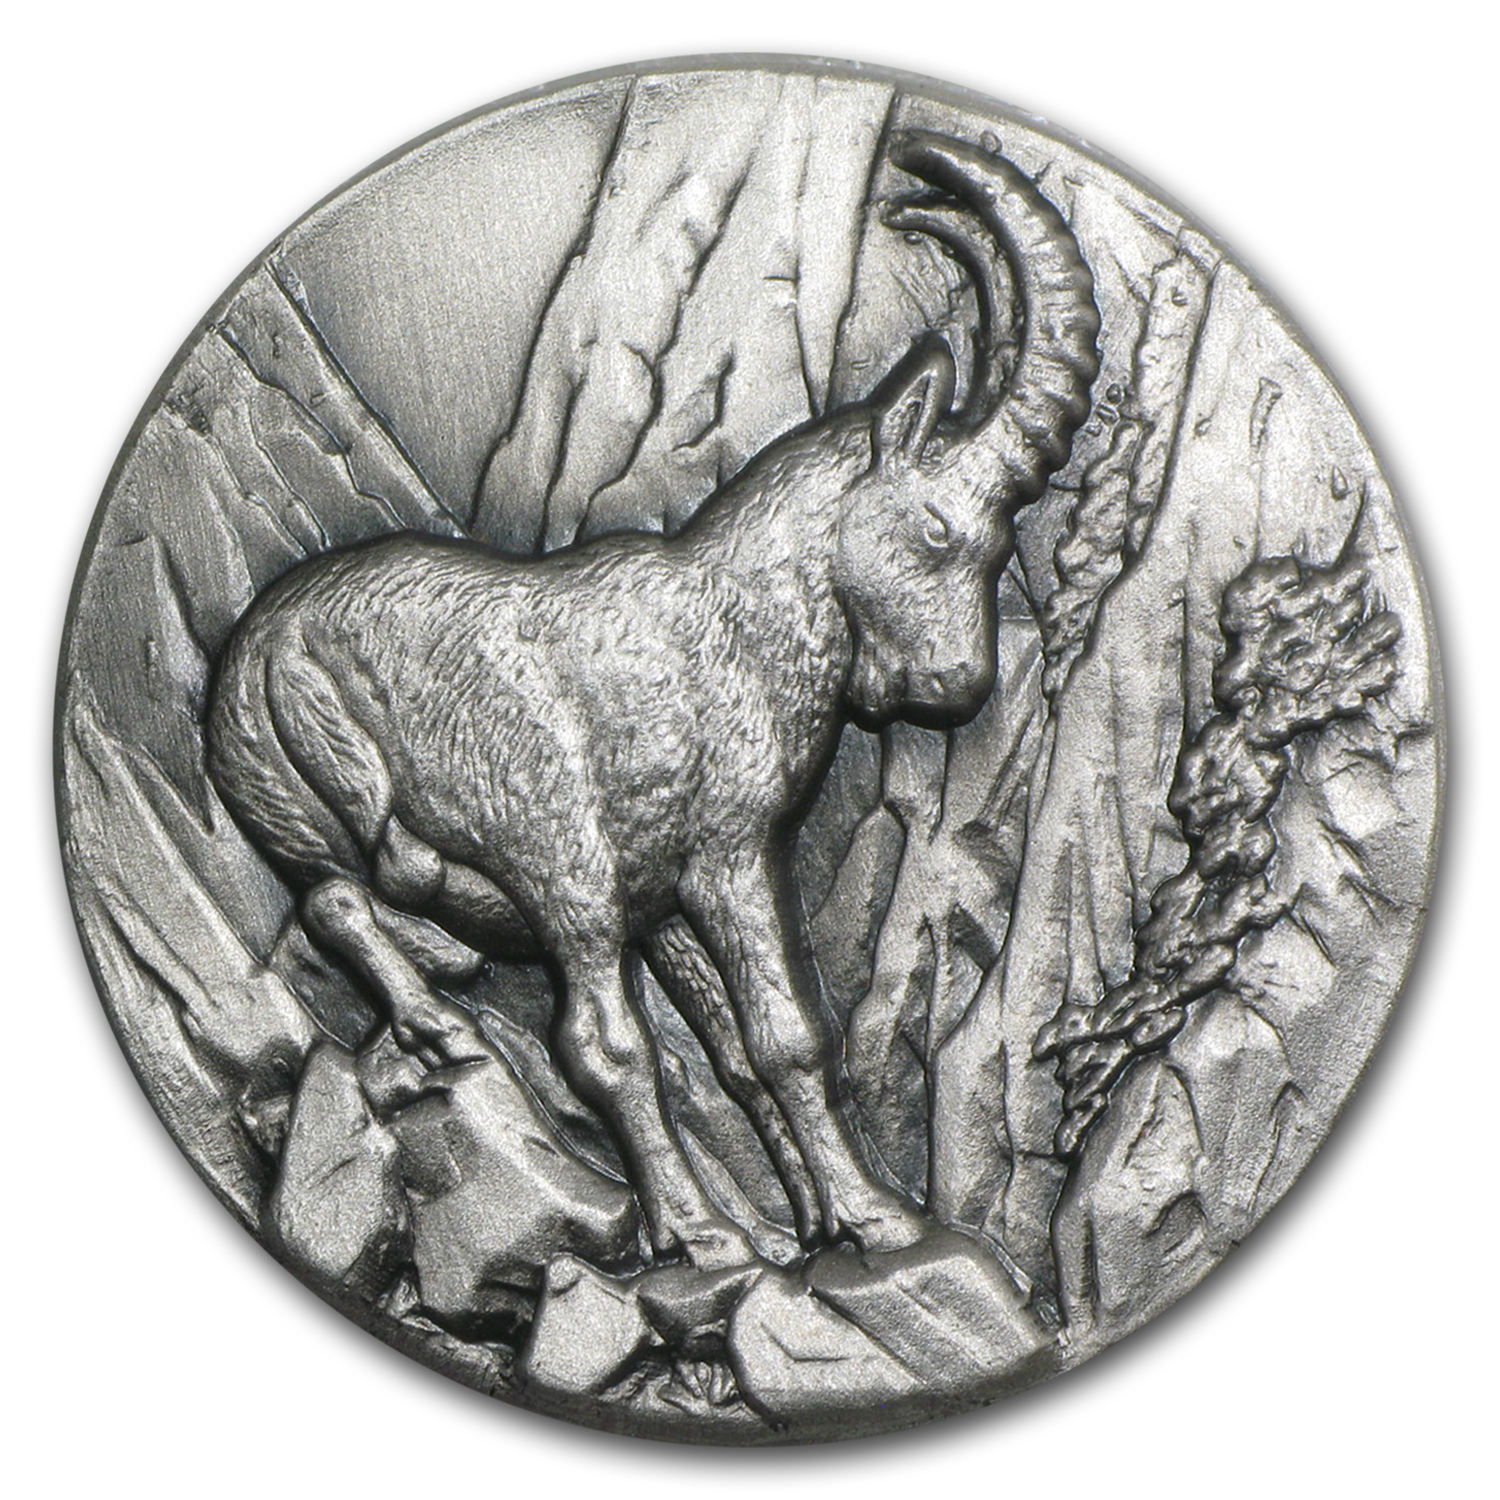 2014 Niue 1 oz Silver Swiss Wildlife High Relief Capricorn